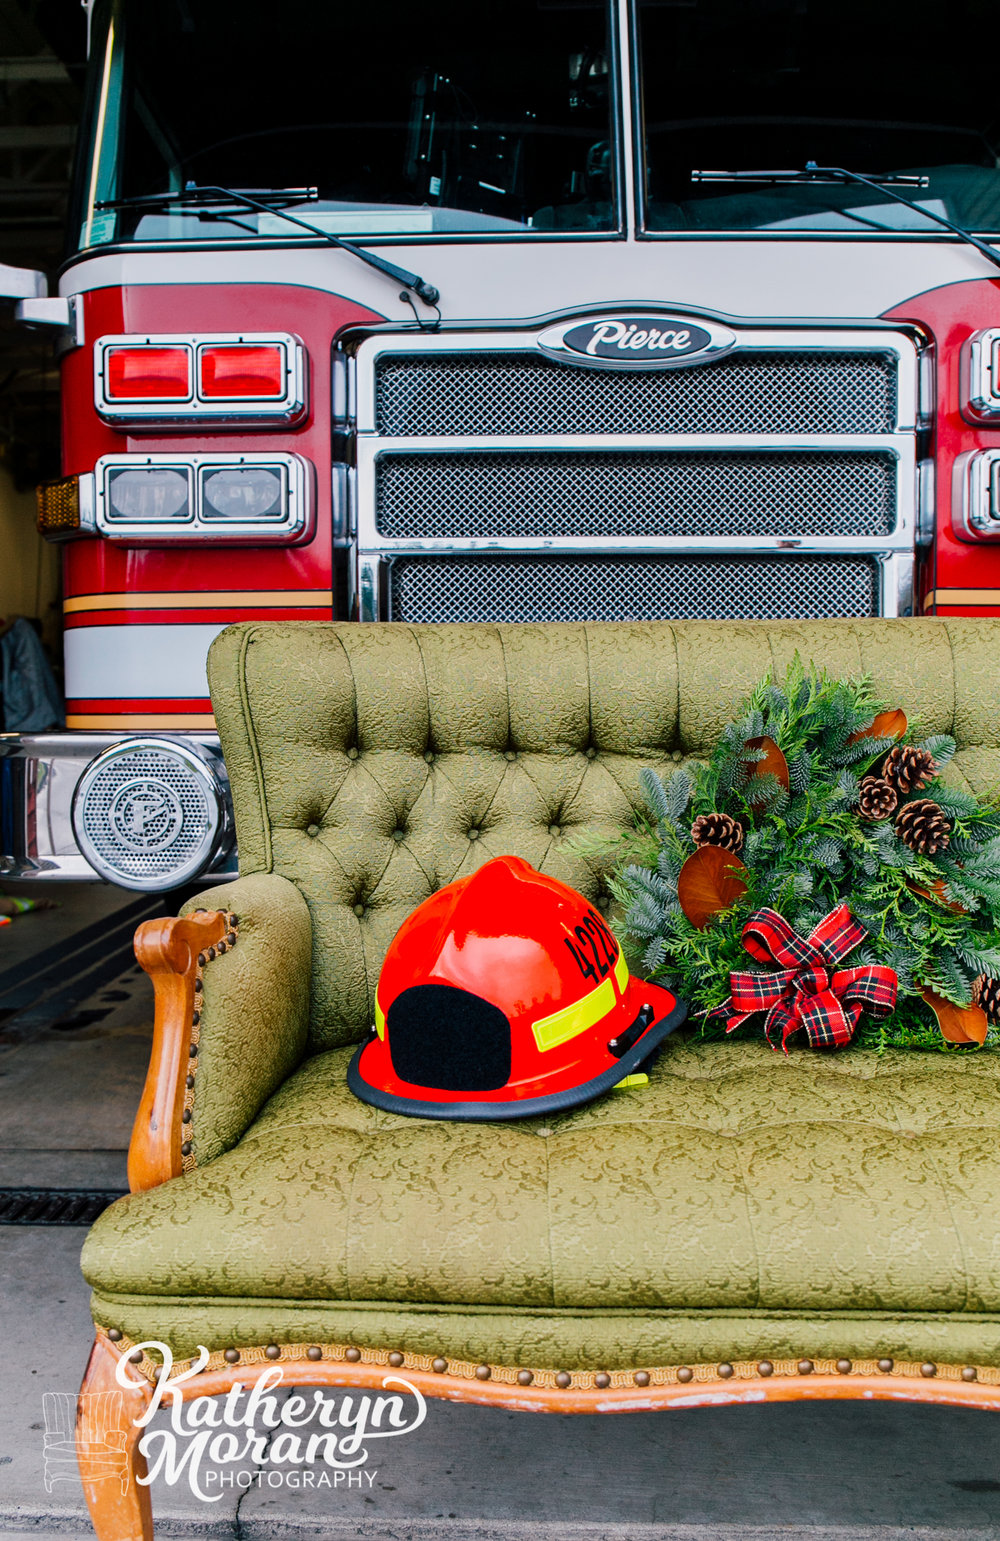 bellingham-photographer-katheryn-moran-whatcom-county-fire-station-12-help-holidays-2018-5.jpg